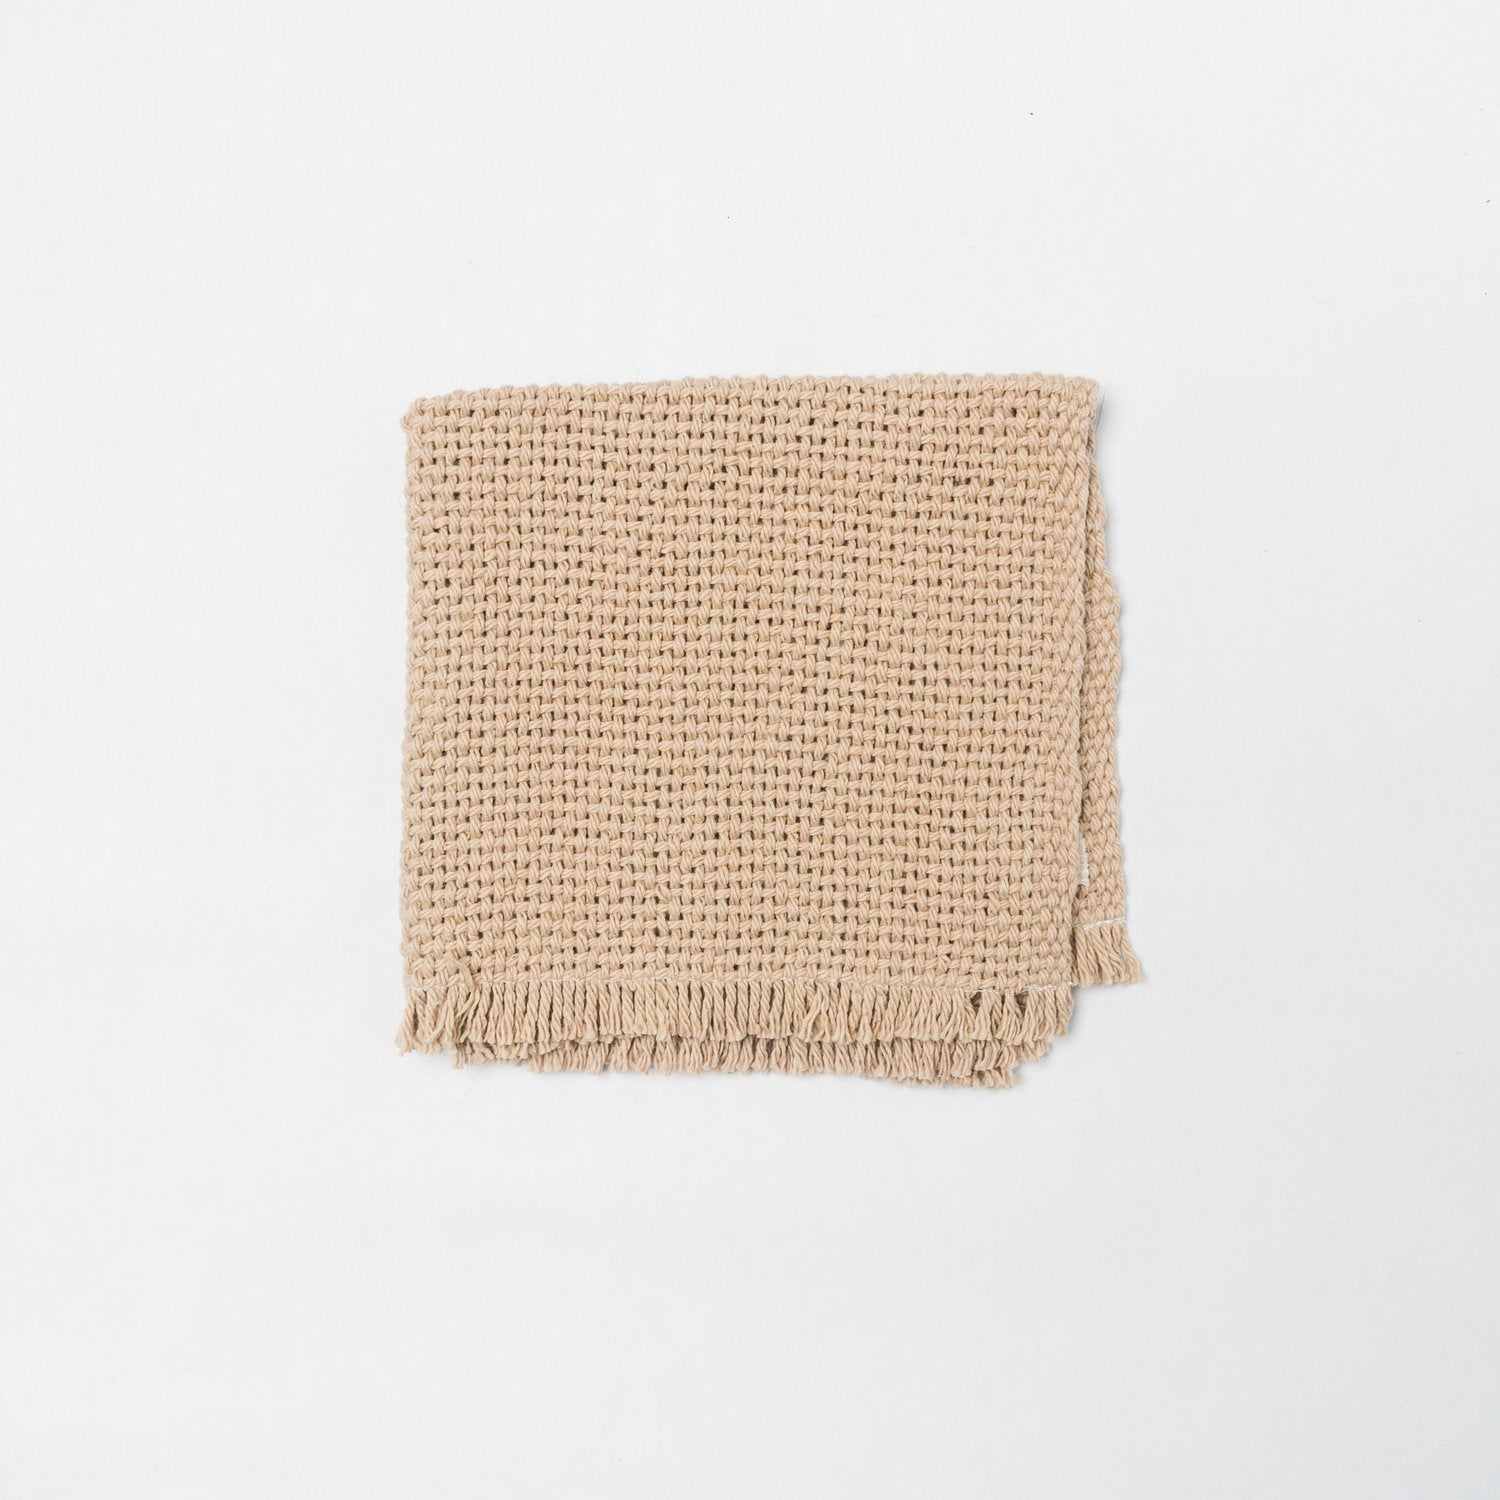 KD Weave Tan Wash Cloth, Set of 2